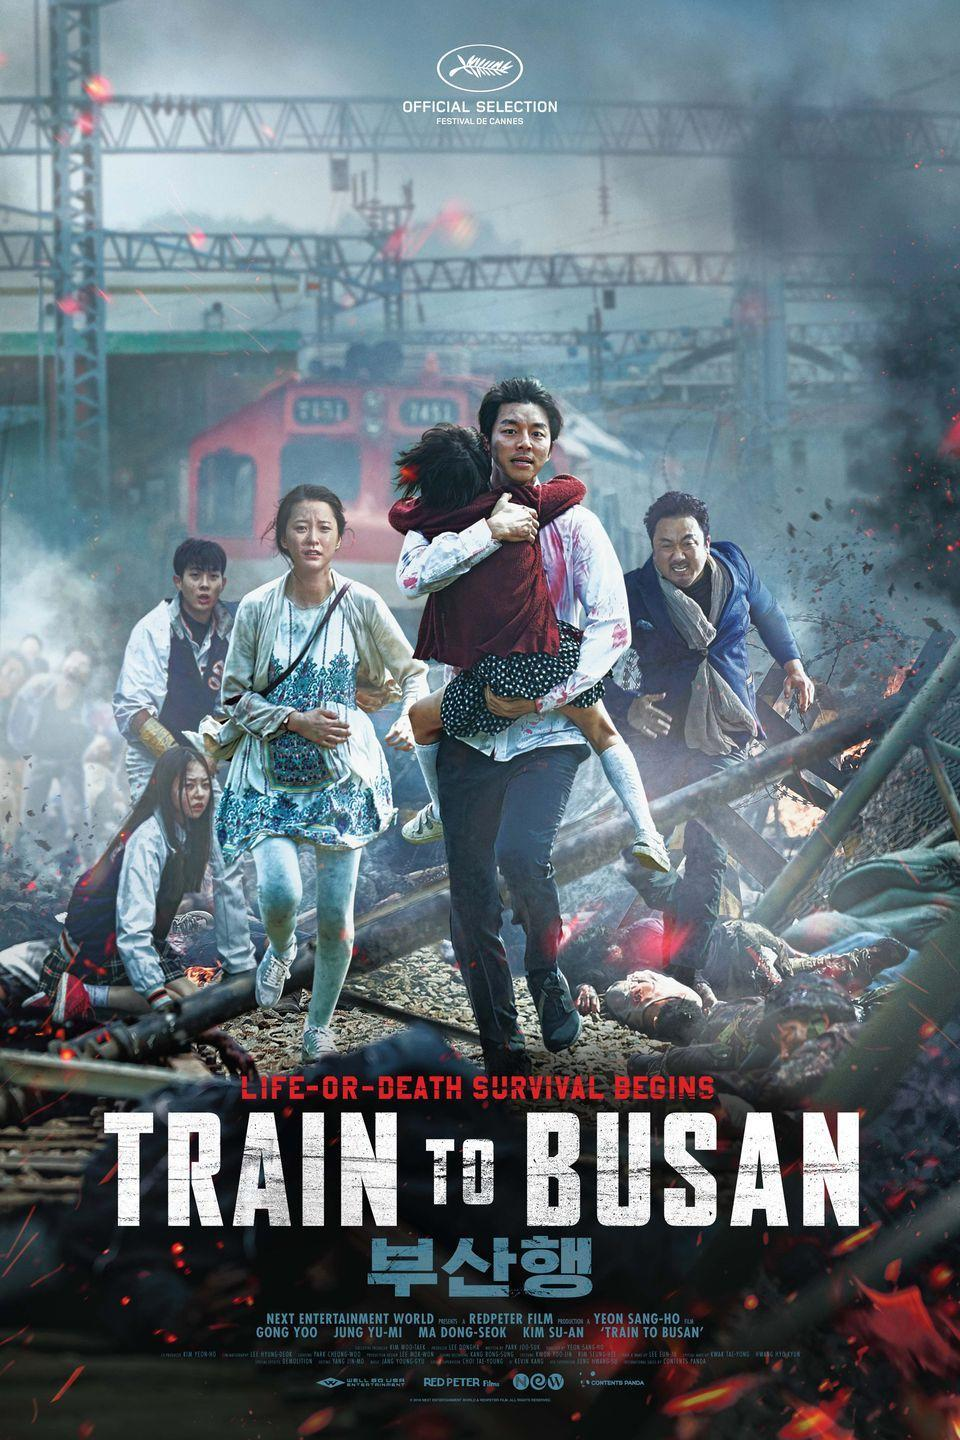 "<p>This South Korean action-thriller about a speeding train full of zombies is often considered one of the best zombie movies ever (even by <a href=""https://twitter.com/edgarwright/status/794767561057443841"" rel=""nofollow noopener"" target=""_blank"" data-ylk=""slk:Shaun of the Dead's director Edgar Wright"" class=""link rapid-noclick-resp""><em>Shaun of the Dead</em>'s director Edgar Wright</a>!), and for good reason: It's exhilarating, intense, and offers one of the most original and unique takes on the genre. </p><p><a class=""link rapid-noclick-resp"" href=""https://www.netflix.com/title/80117824"" rel=""nofollow noopener"" target=""_blank"" data-ylk=""slk:WATCH ON NETFLIX"">WATCH ON NETFLIX</a></p><p><strong>RELATED: </strong><a href=""https://www.goodhousekeeping.com/life/entertainment/g33446615/korean-movies/"" rel=""nofollow noopener"" target=""_blank"" data-ylk=""slk:The 15 Best Korean Movies You Can Stream Right Now"" class=""link rapid-noclick-resp"">The 15 Best Korean Movies You Can Stream Right Now</a></p>"